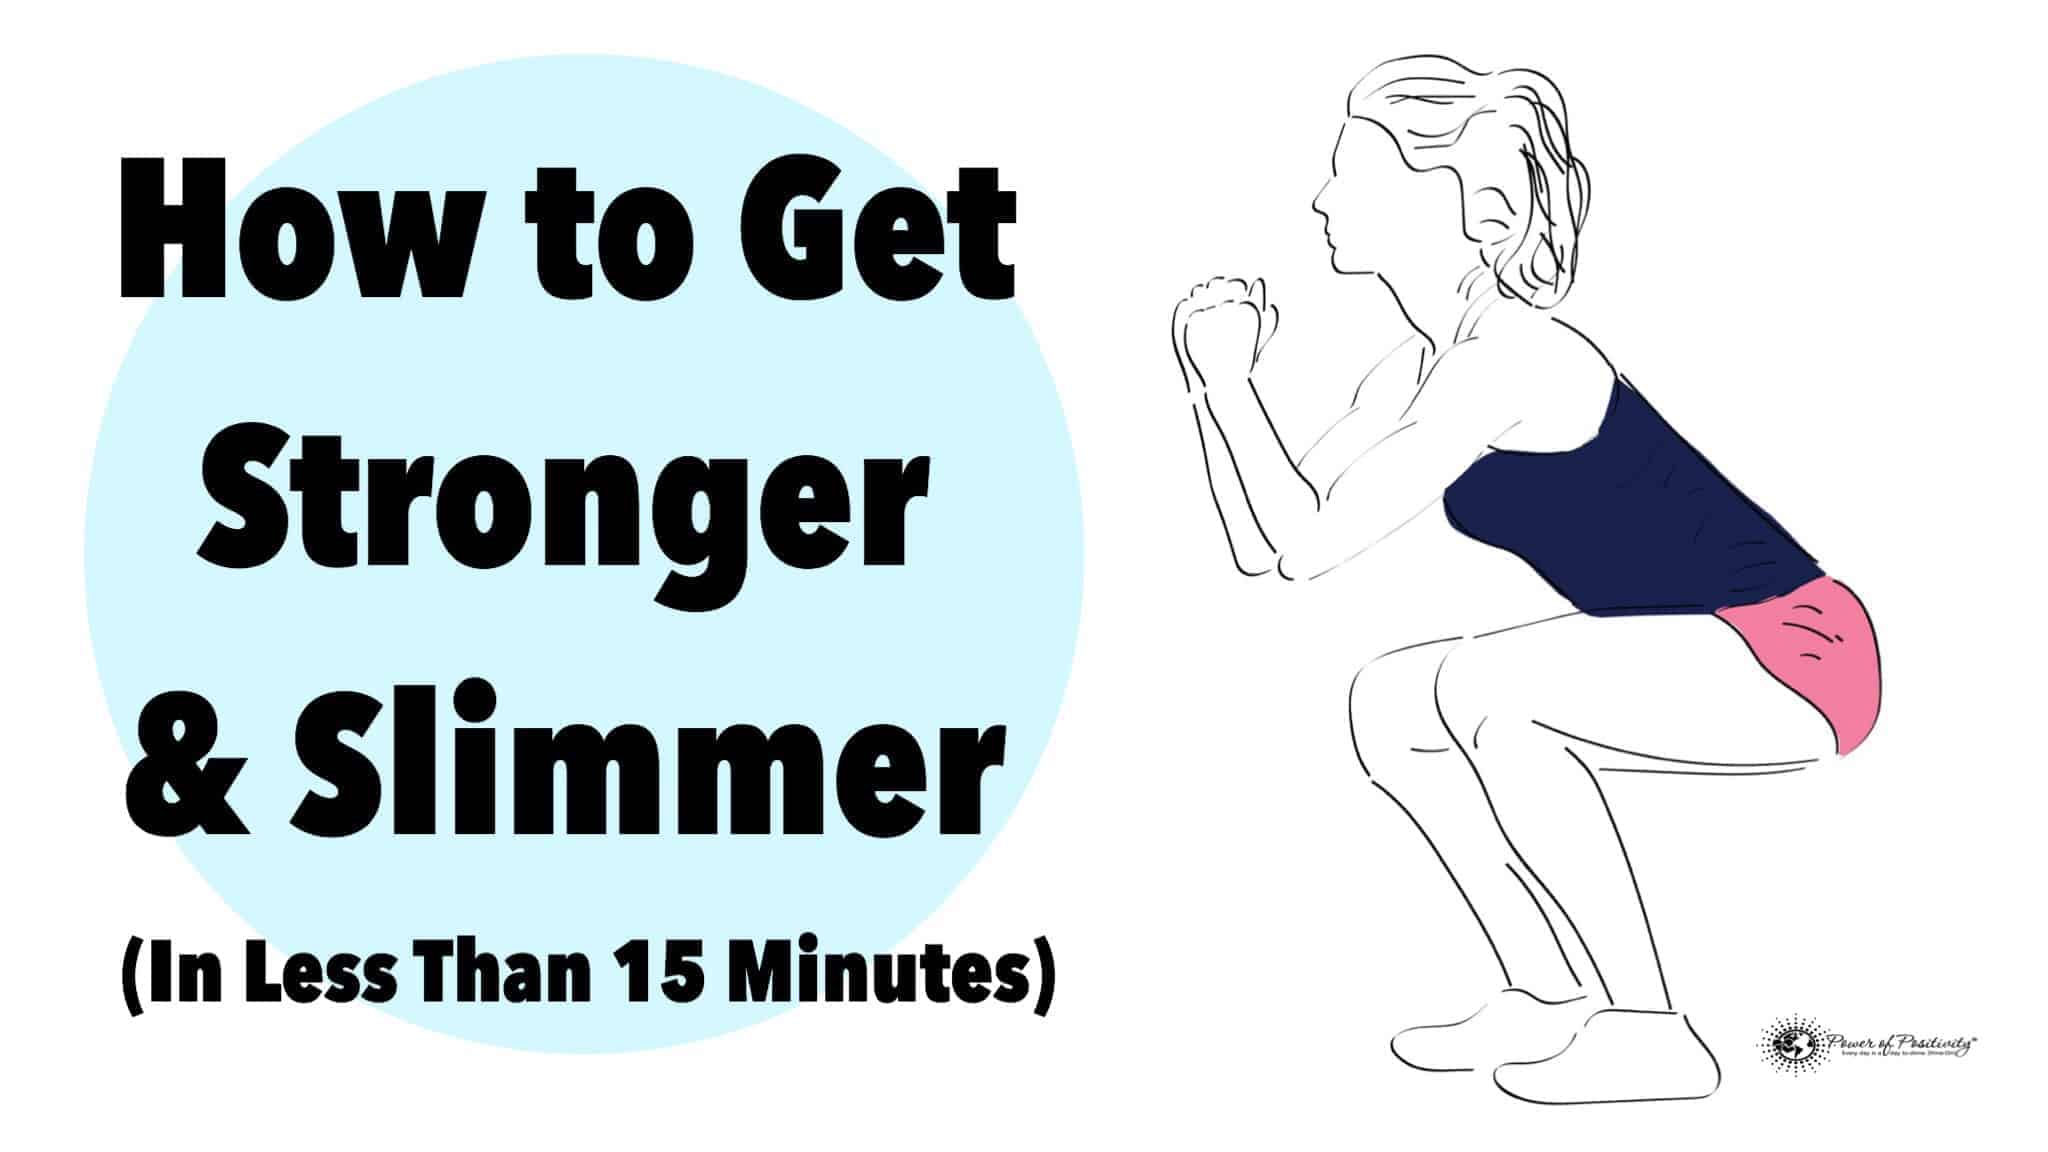 how to get stronger & slimmer